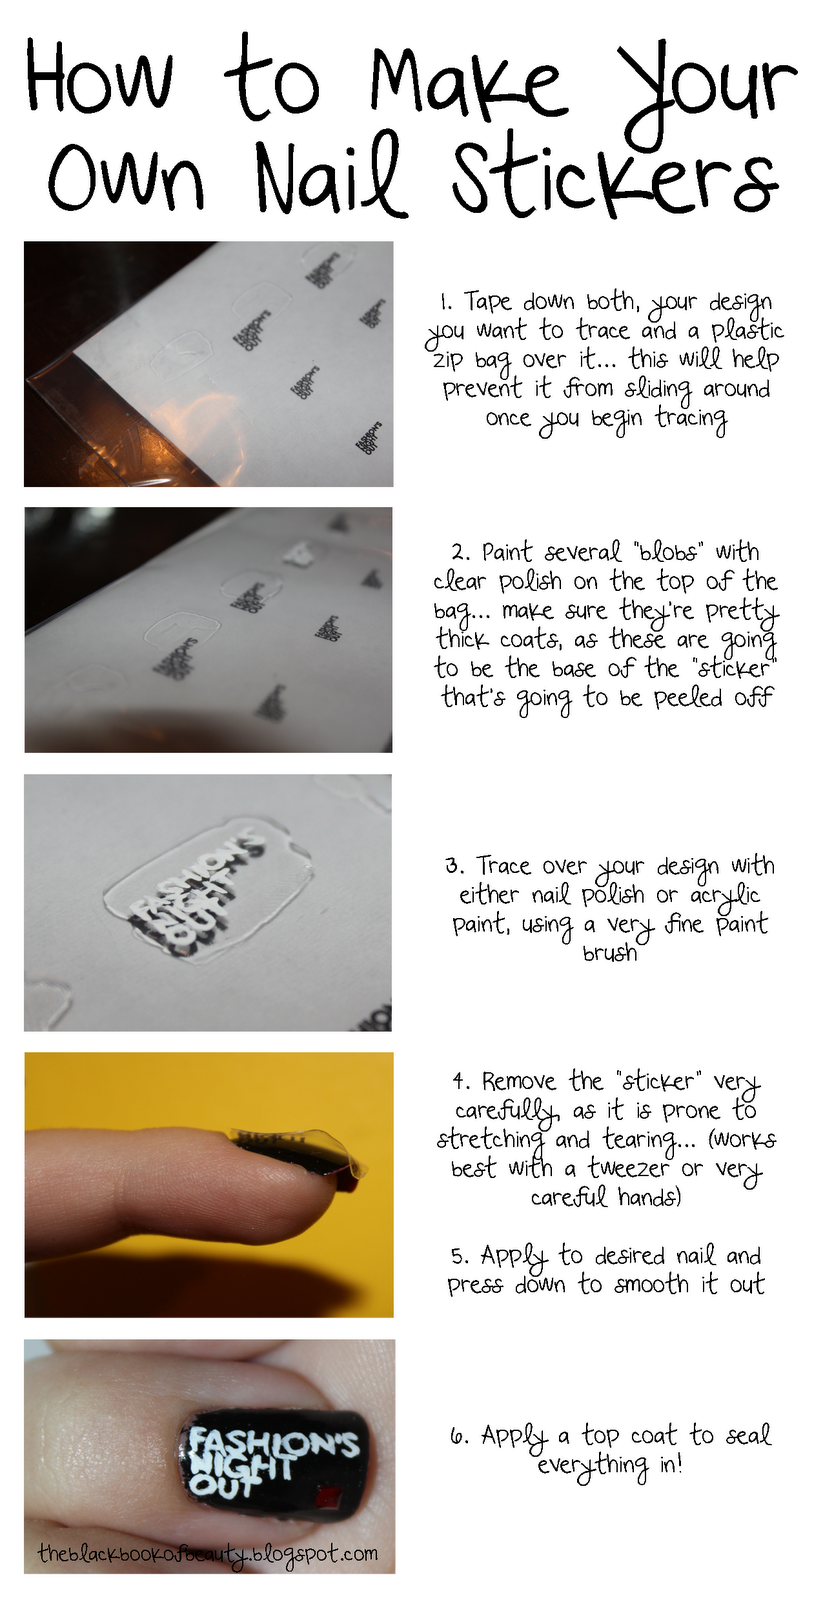 Black book of beauty how to make your own nail stickers for How to print your own labels